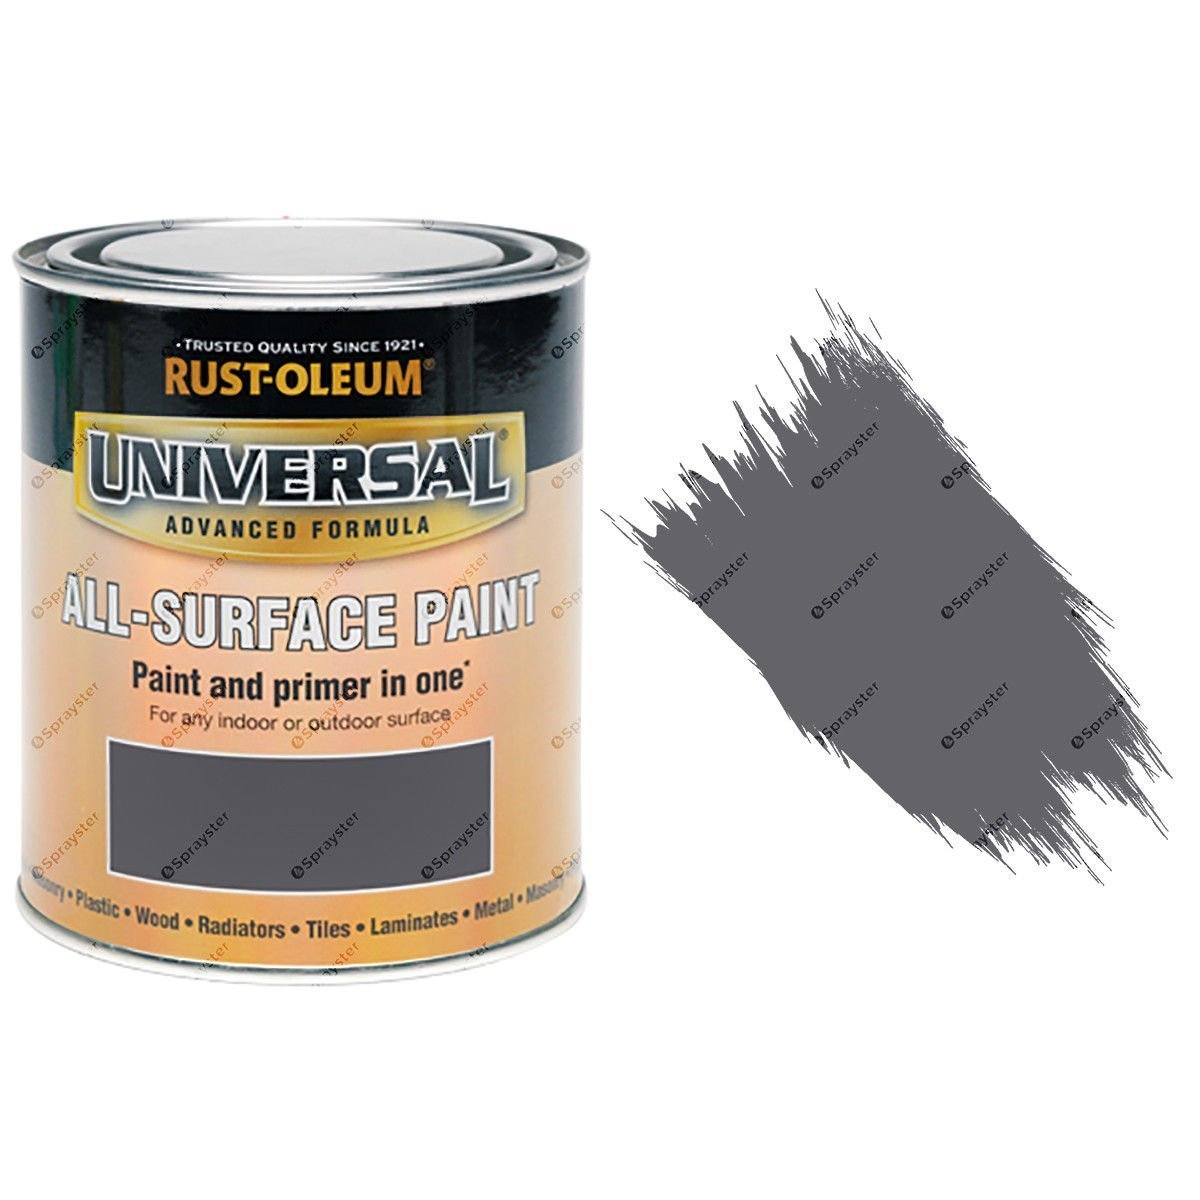 Rust-Oleum-Universal-All-Surface-Self-Primer-Brush-Paint-Gloss-Dark-Grey-750ml-372229316275